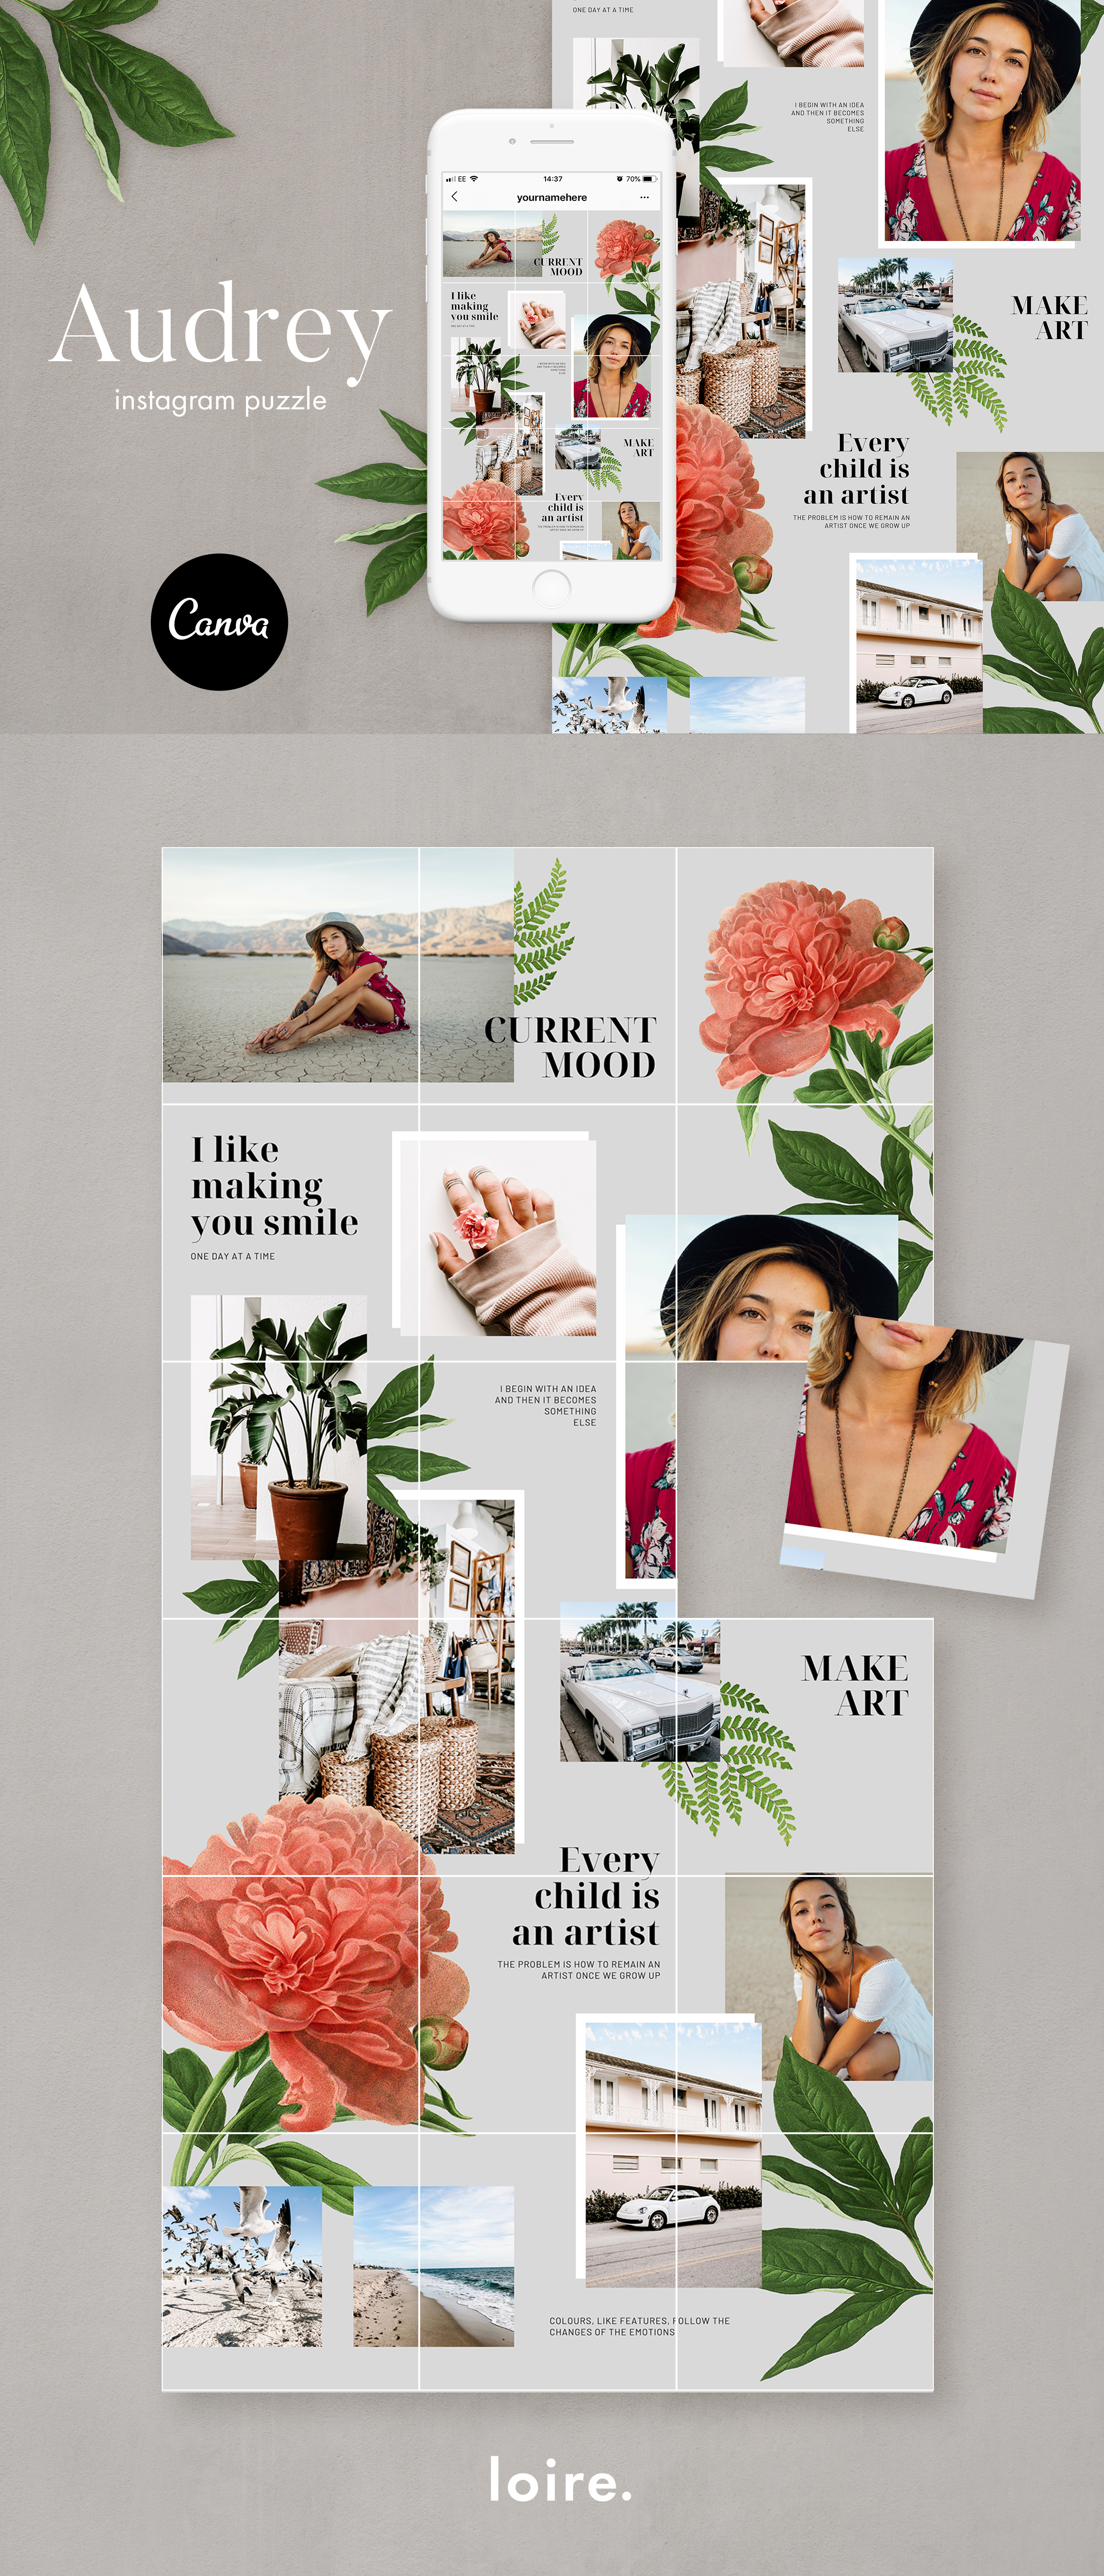 Instagram puzzle template for Canva example image 8